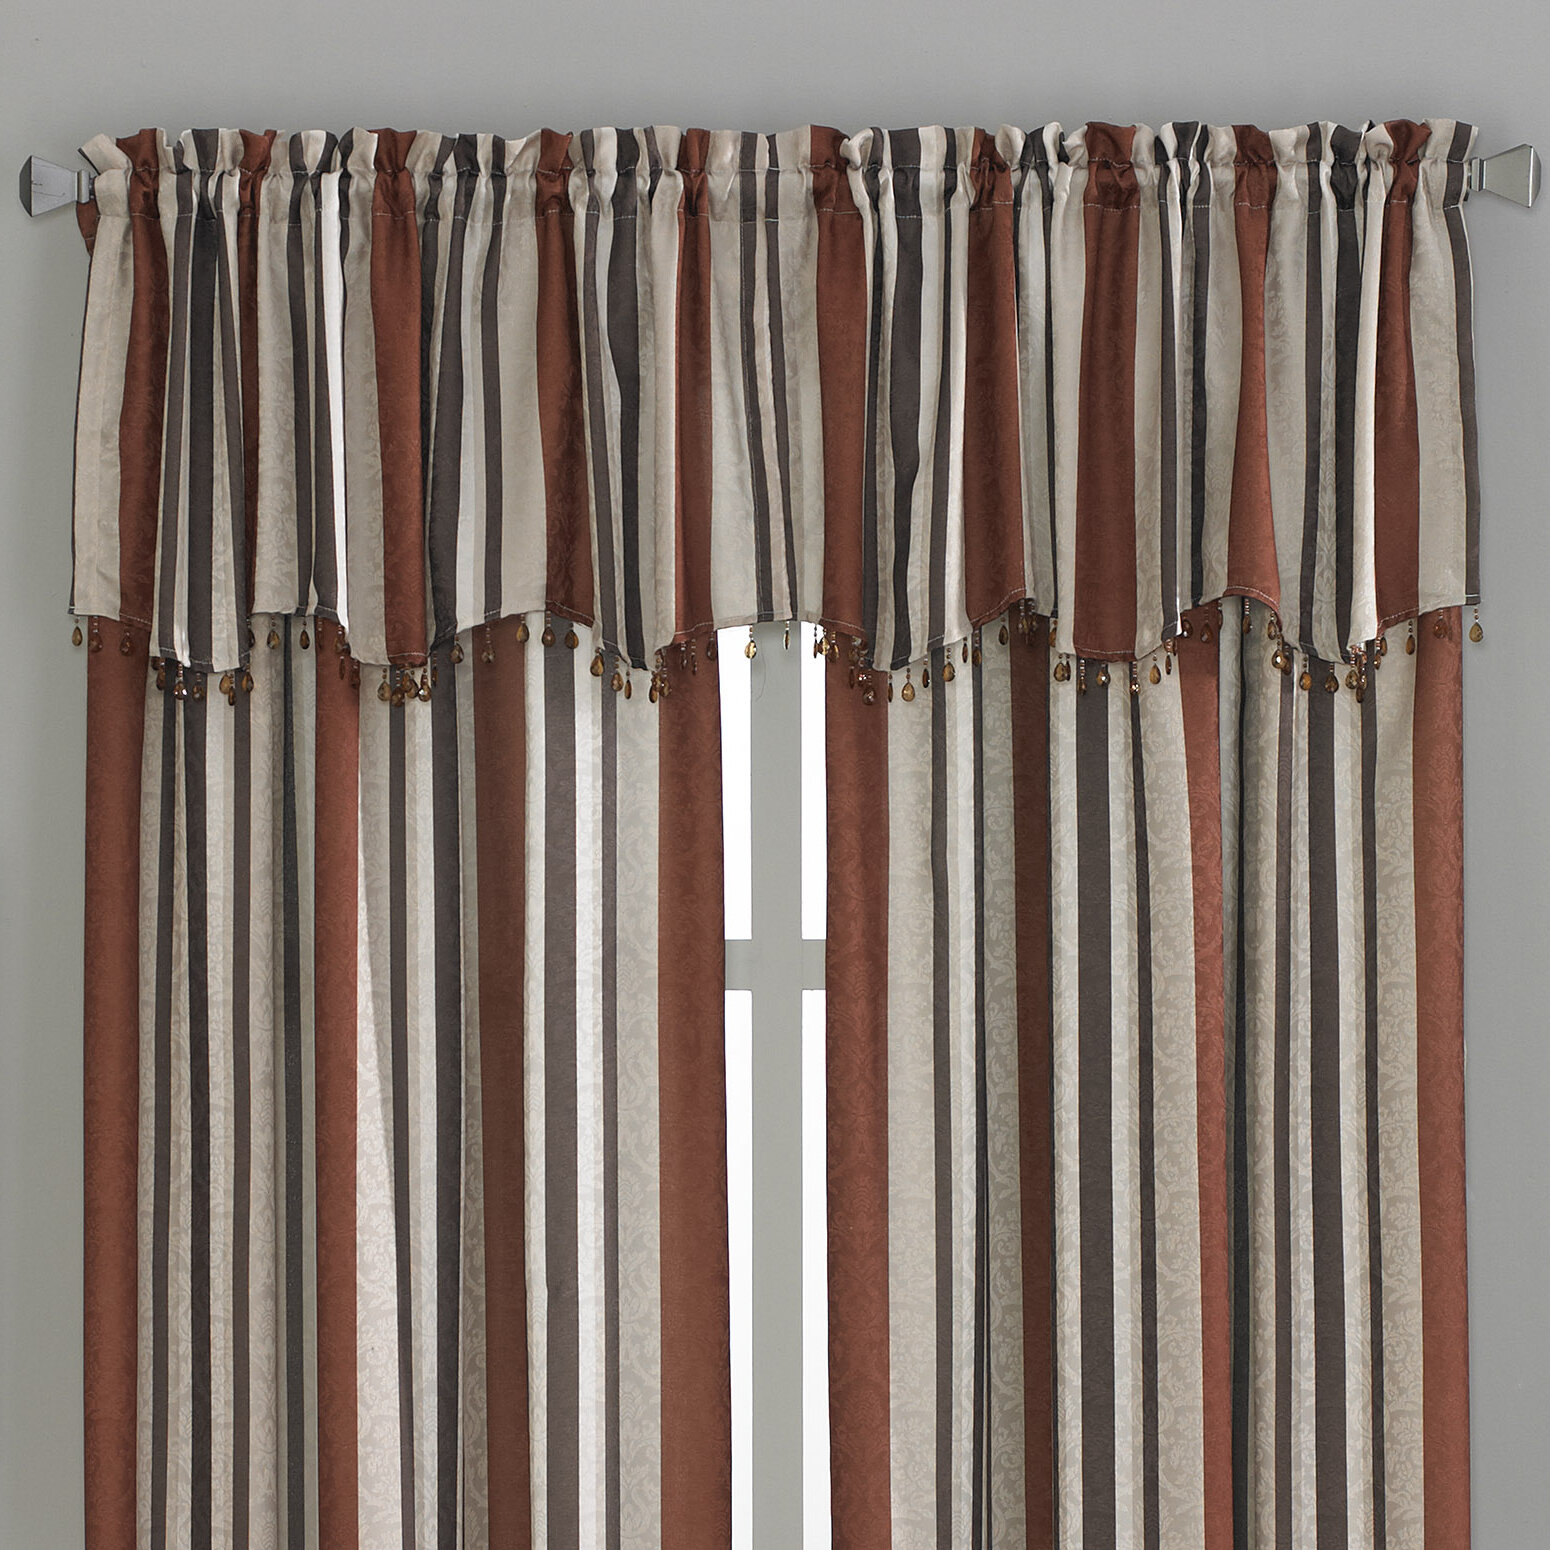 Montego Stripe Lined Scalloped Valance: CHF Mercury Stripe Scallop Curtain Valance